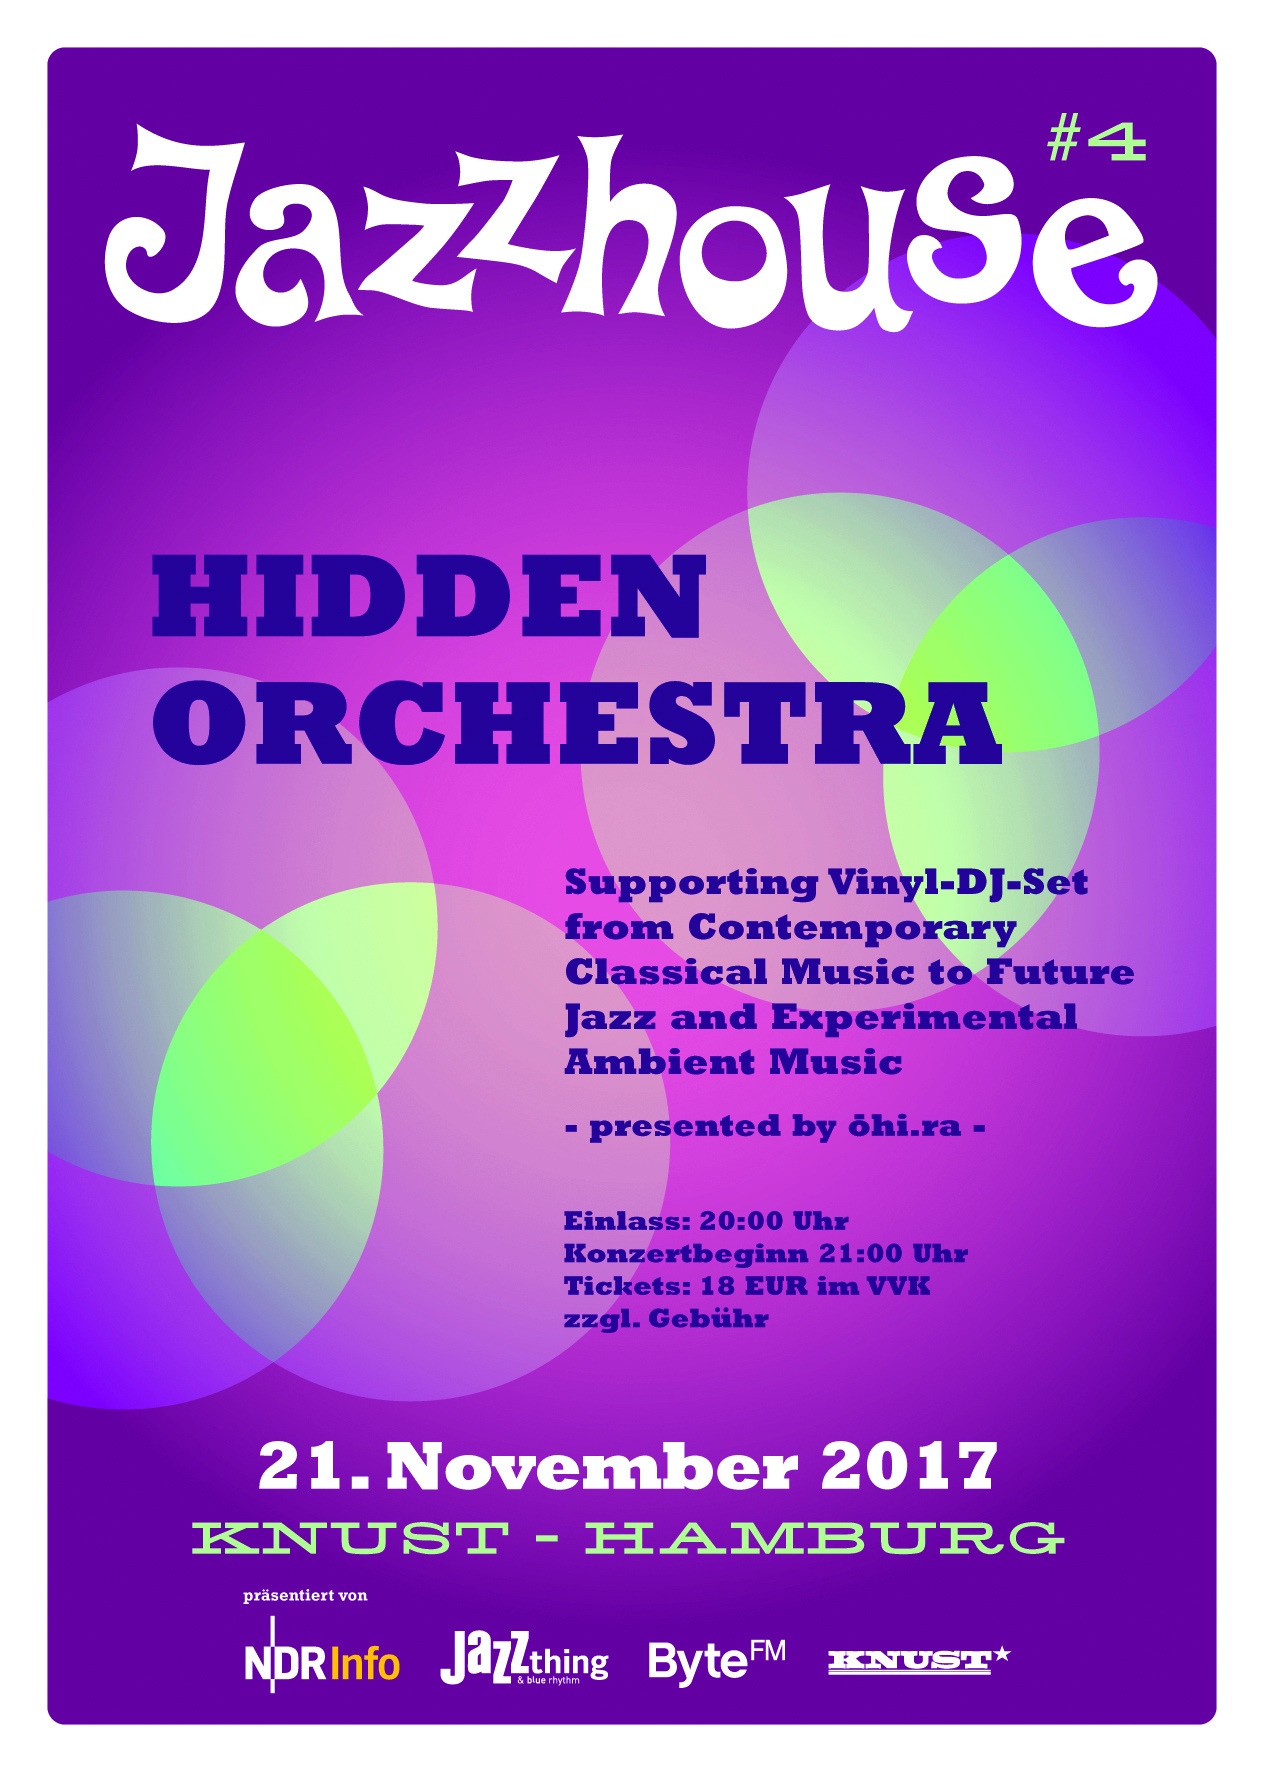 Preview: HIDDEN ORCHESTRA